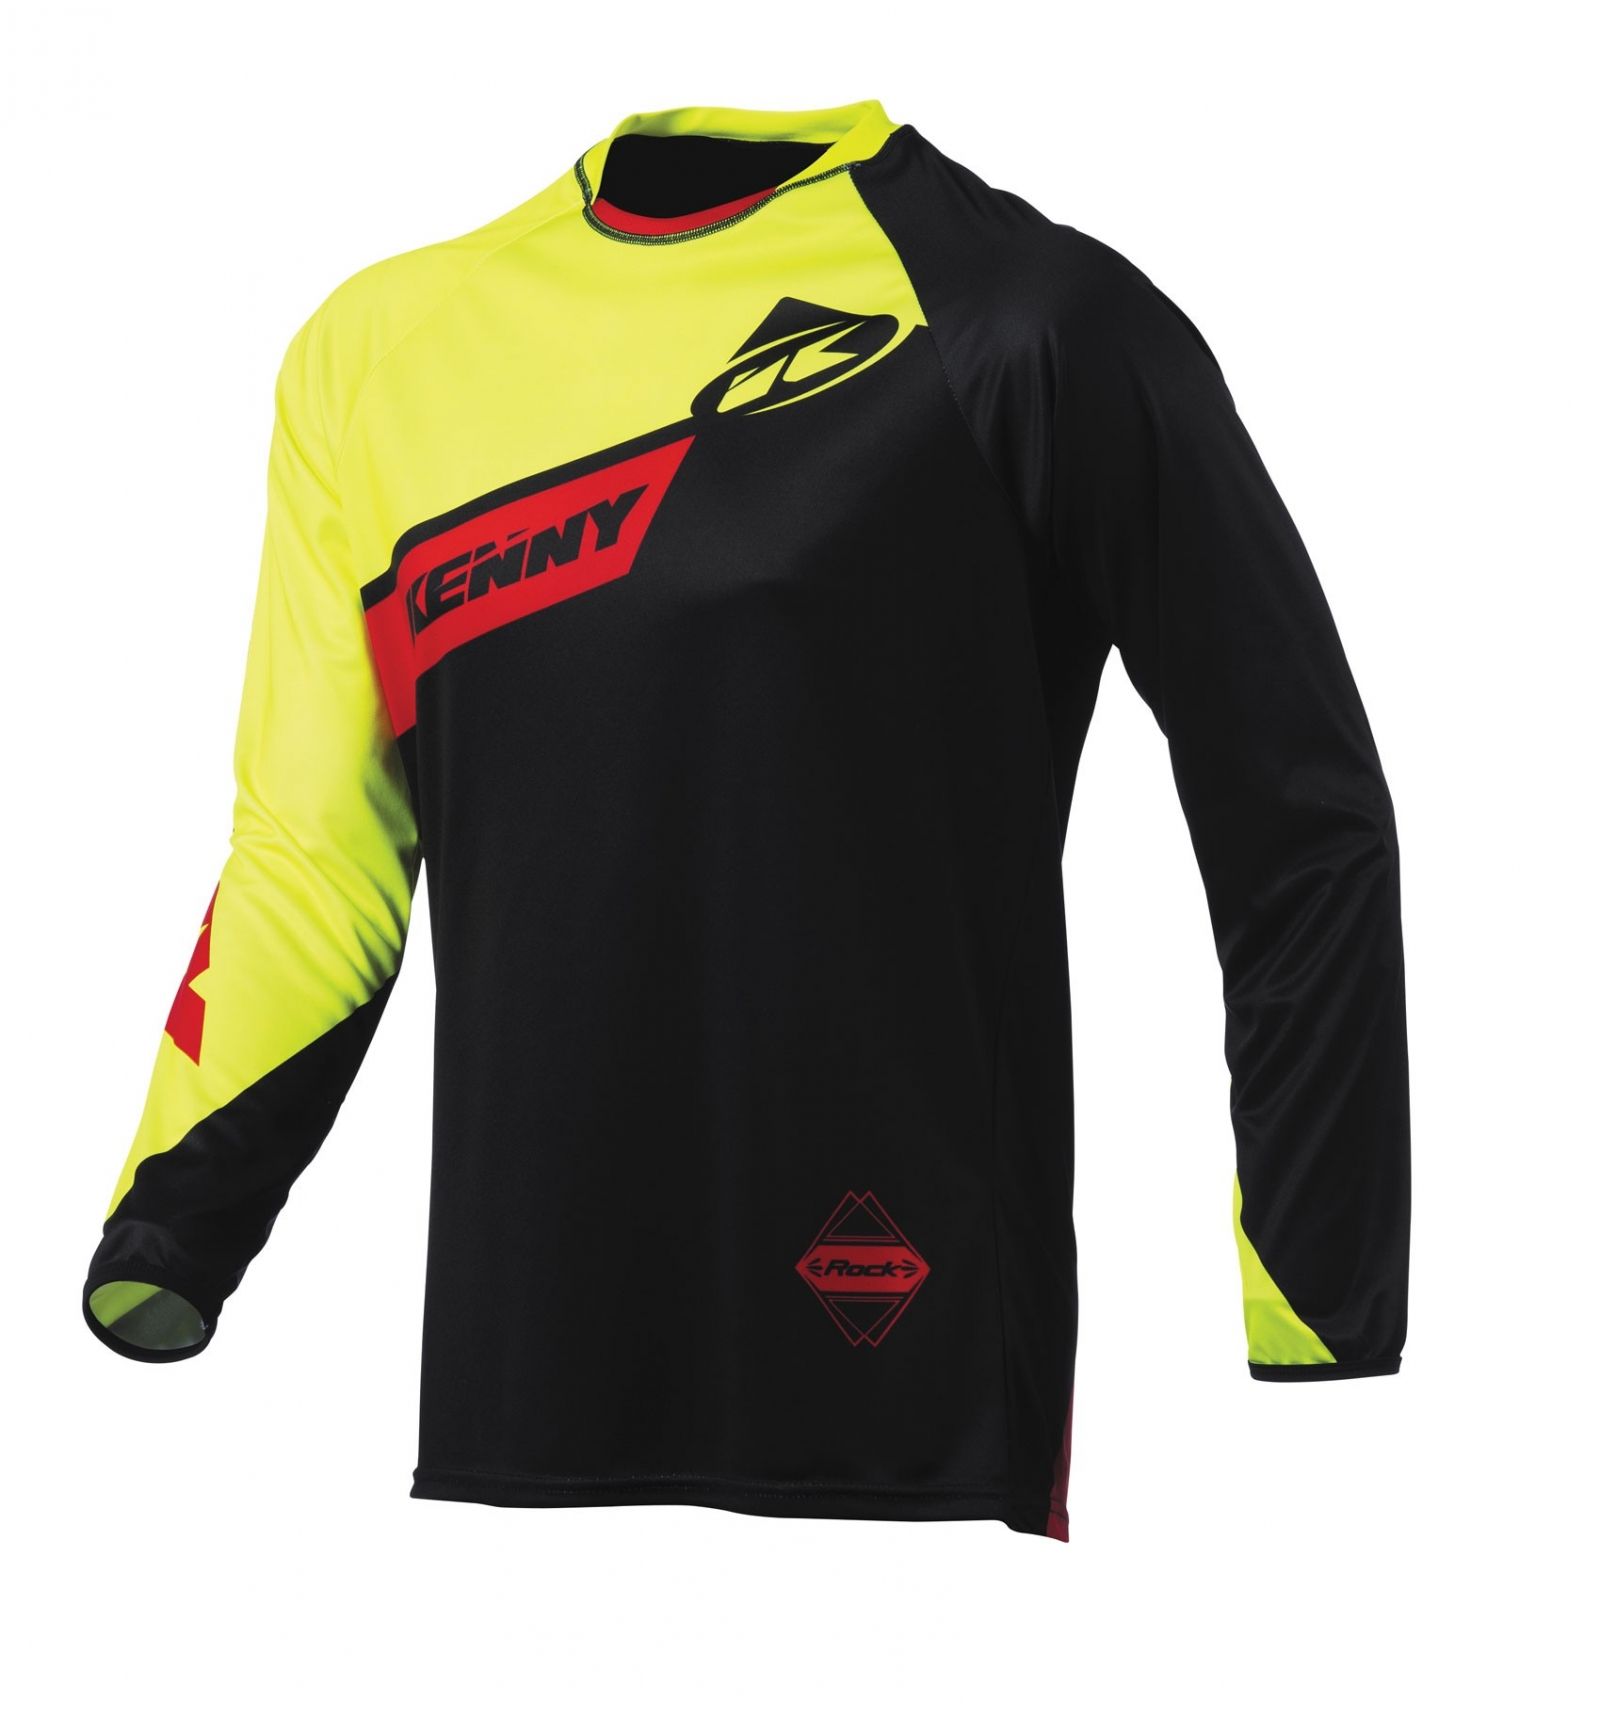 Maillot kenny bmx dh jaune fluo / rouge